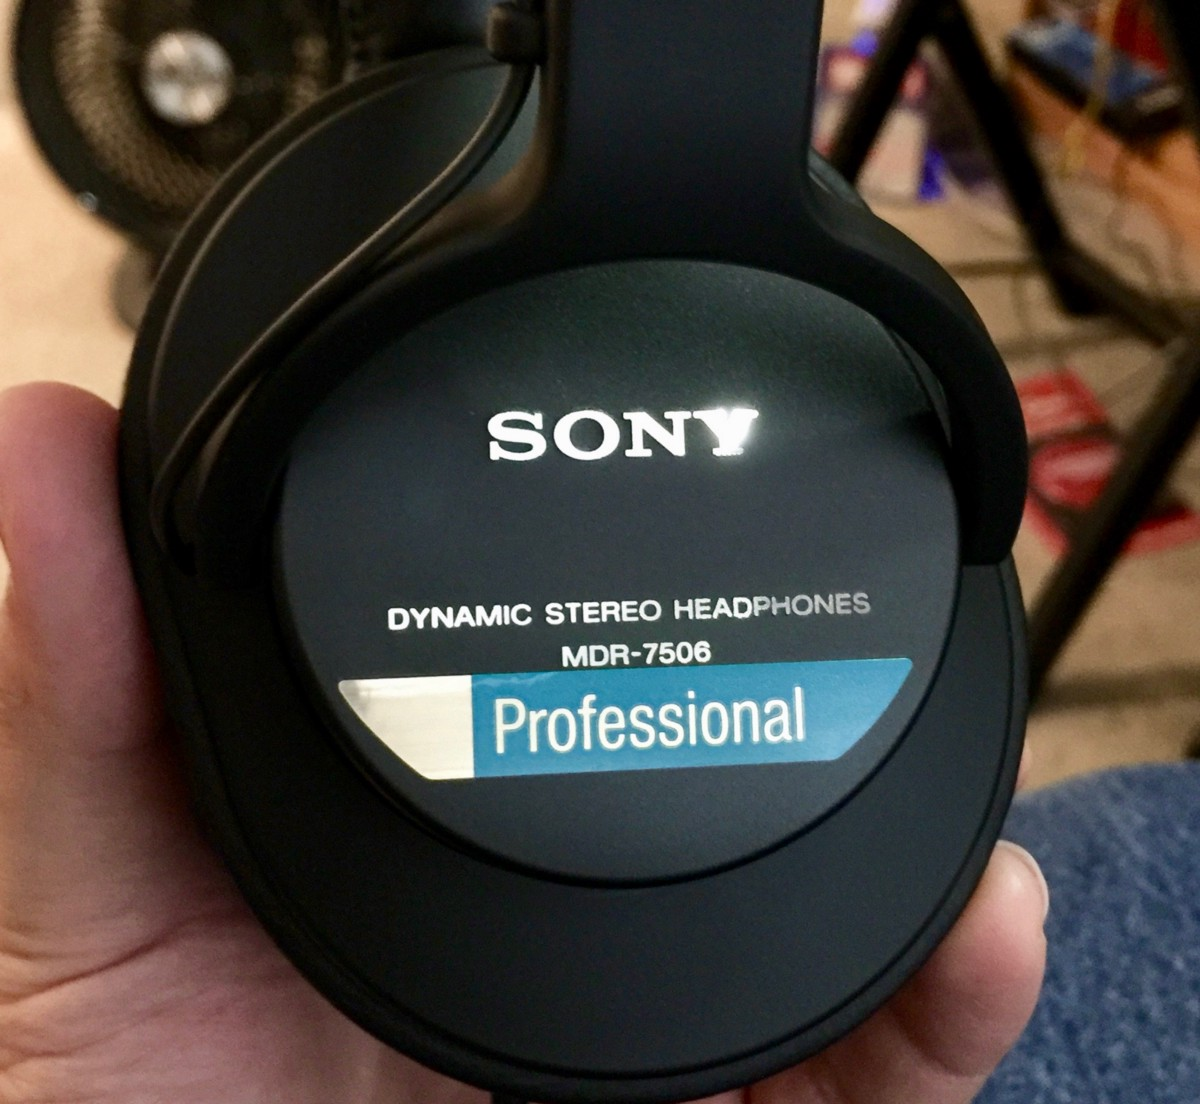 sony mdr 7506 headphone review the world s favorite headphone. Black Bedroom Furniture Sets. Home Design Ideas